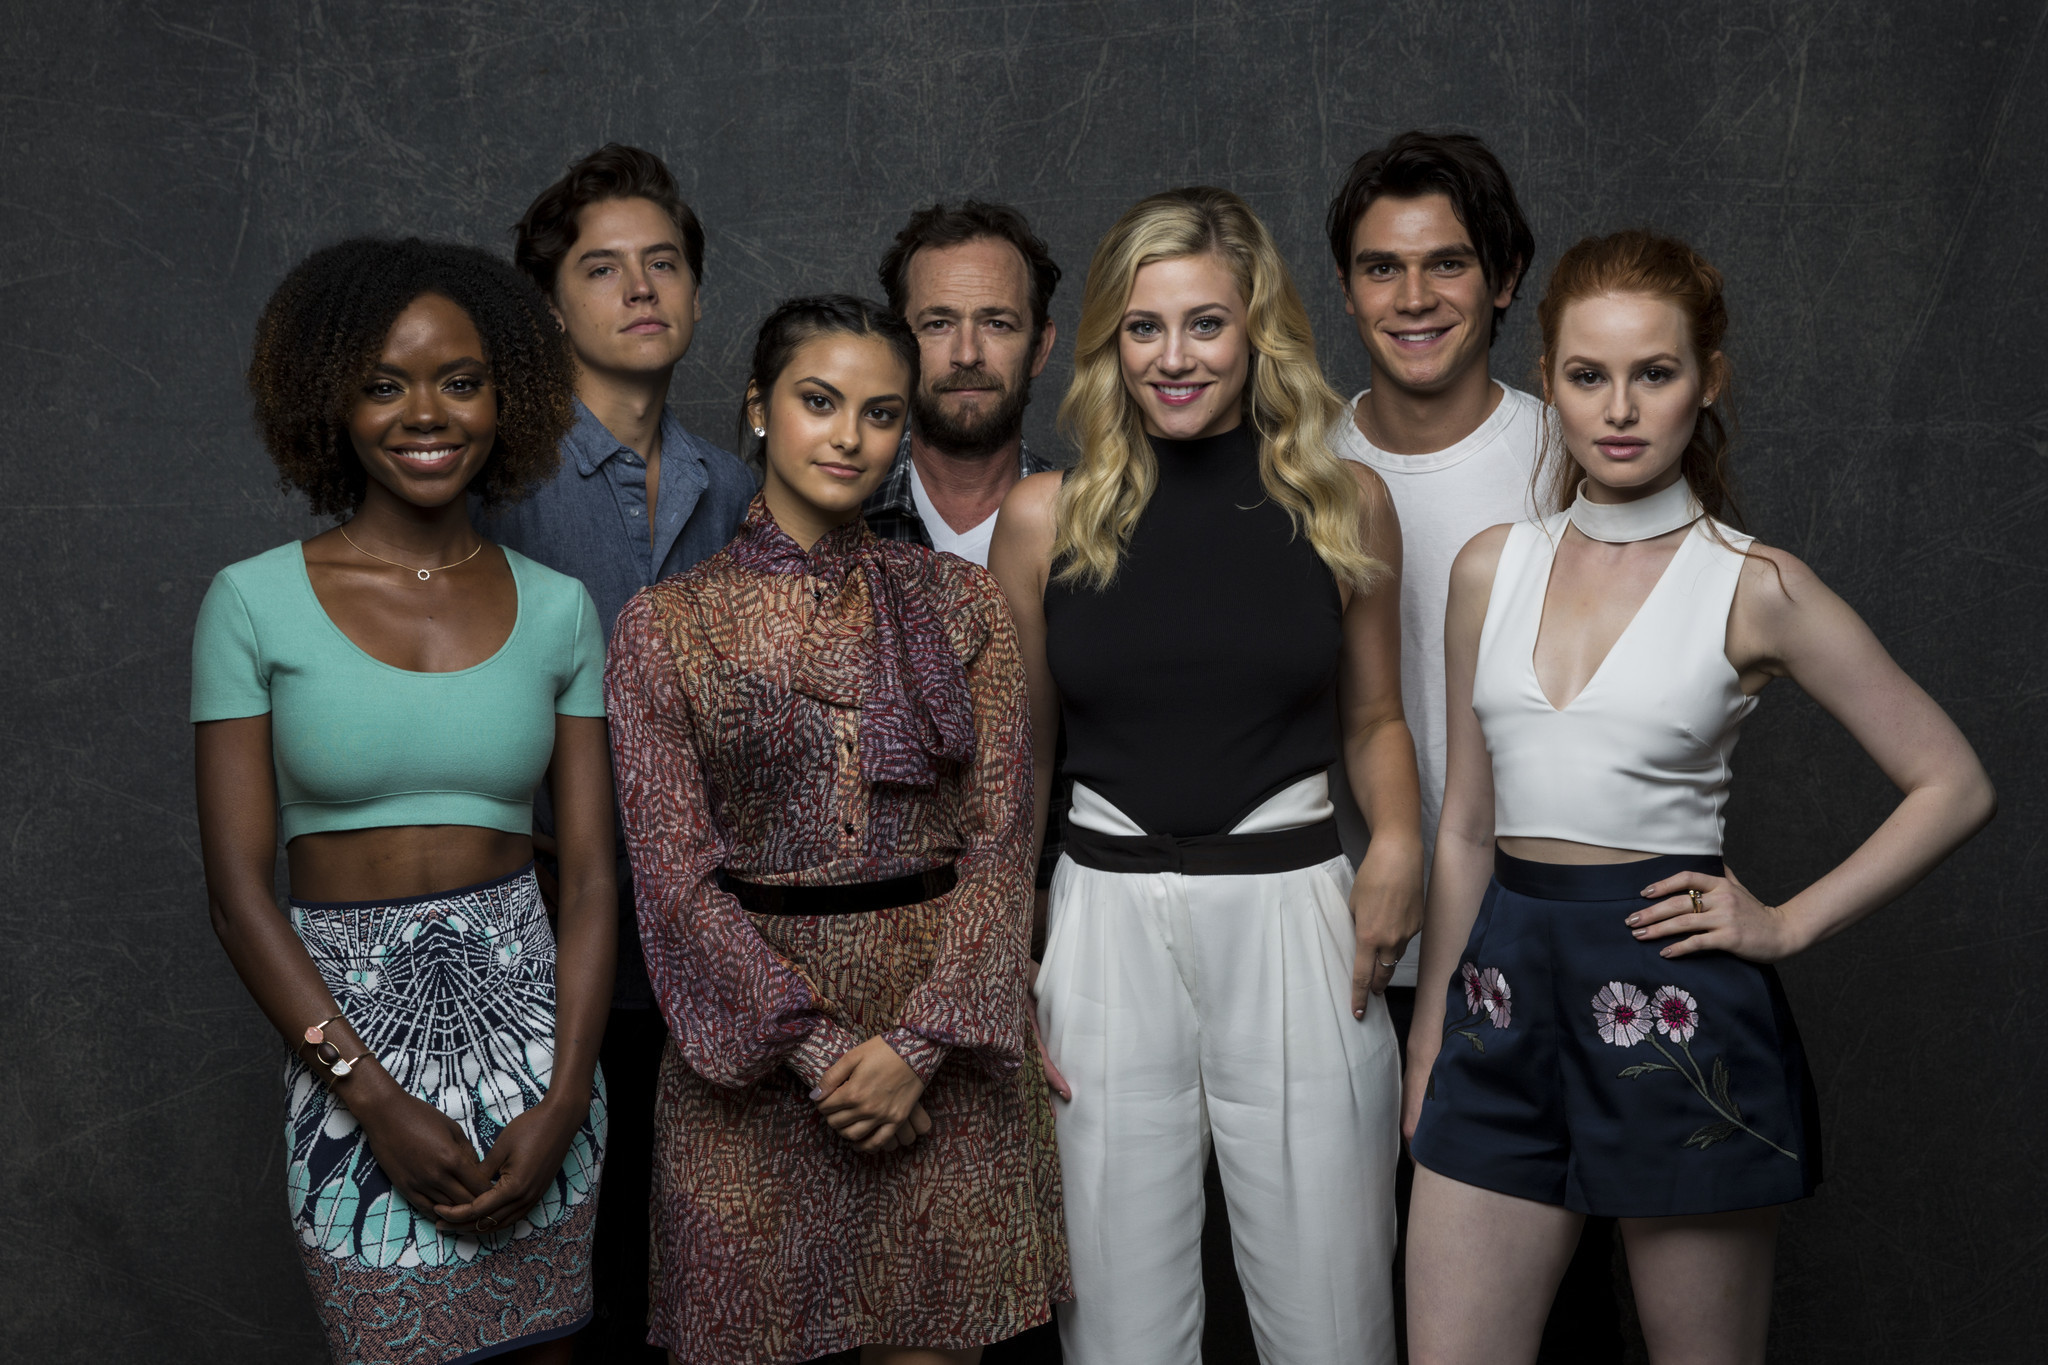 Riverdale Wallpaper: 'Riverdale' Cast On Turning 'Archie's' High School